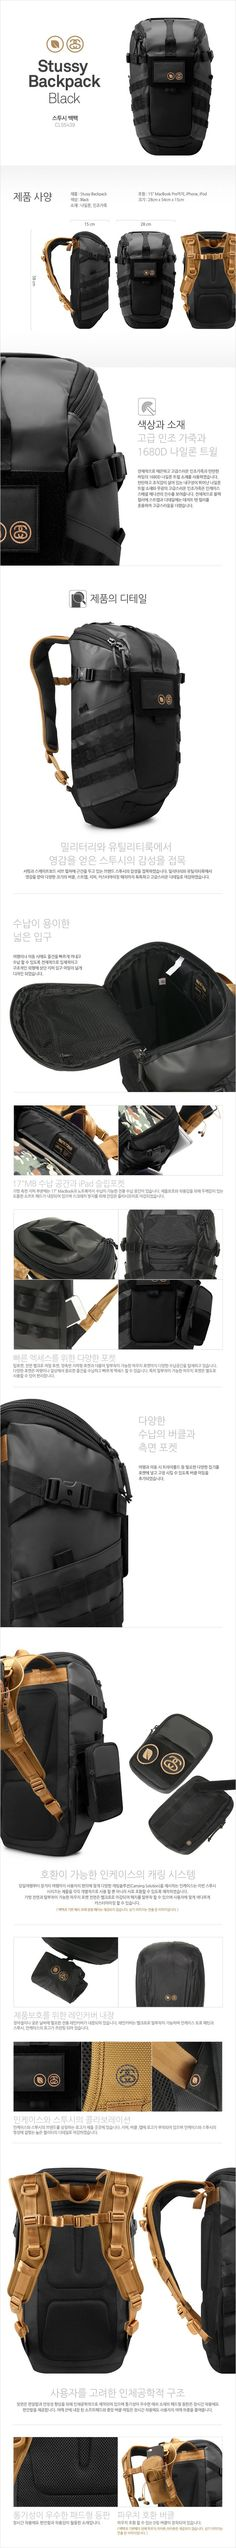 Stussy Backpack - In